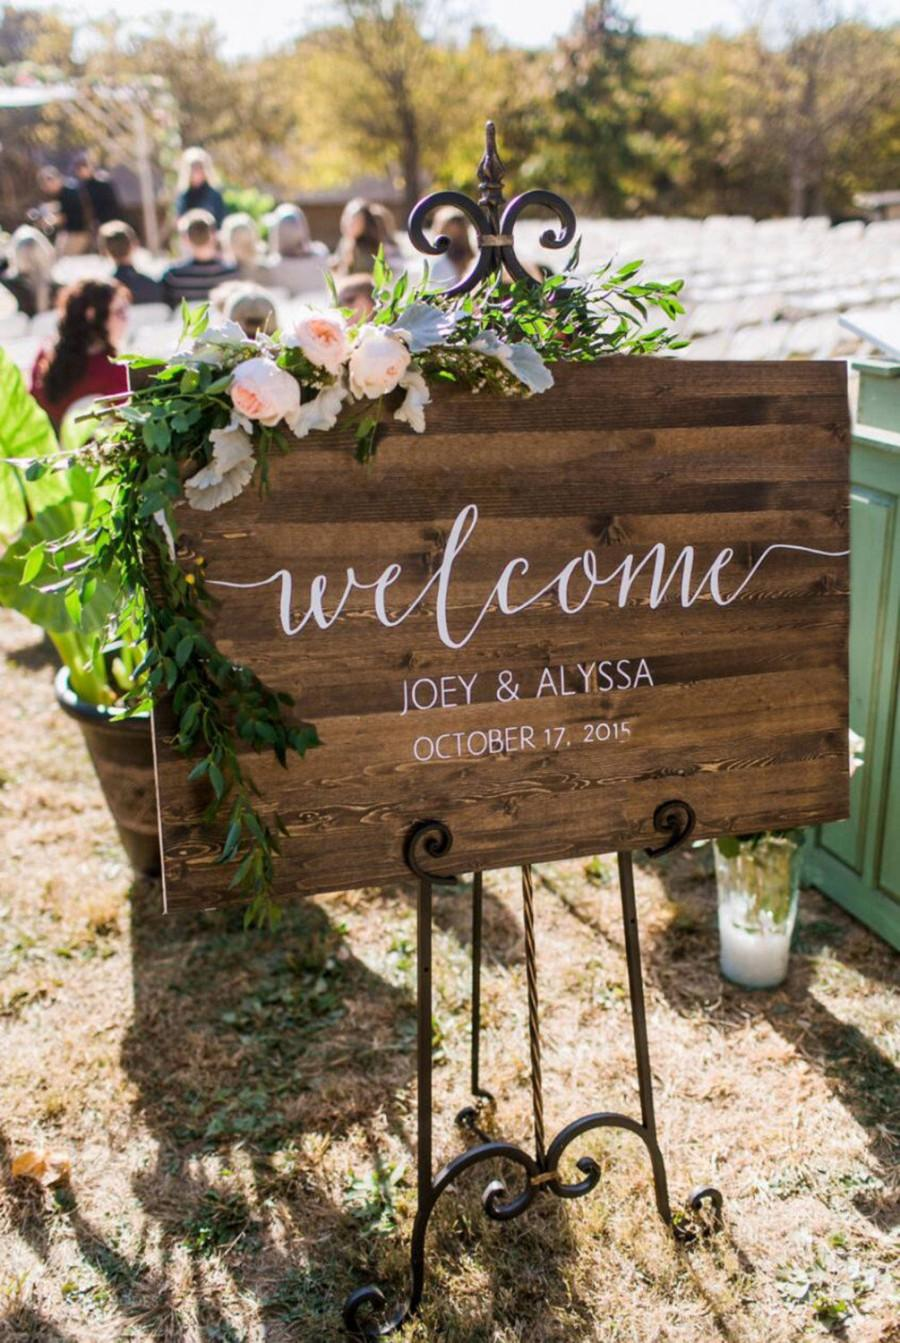 Nozze - Wedding Welcome Sign - Rustic Wood Wedding Sign - Sophia Collection